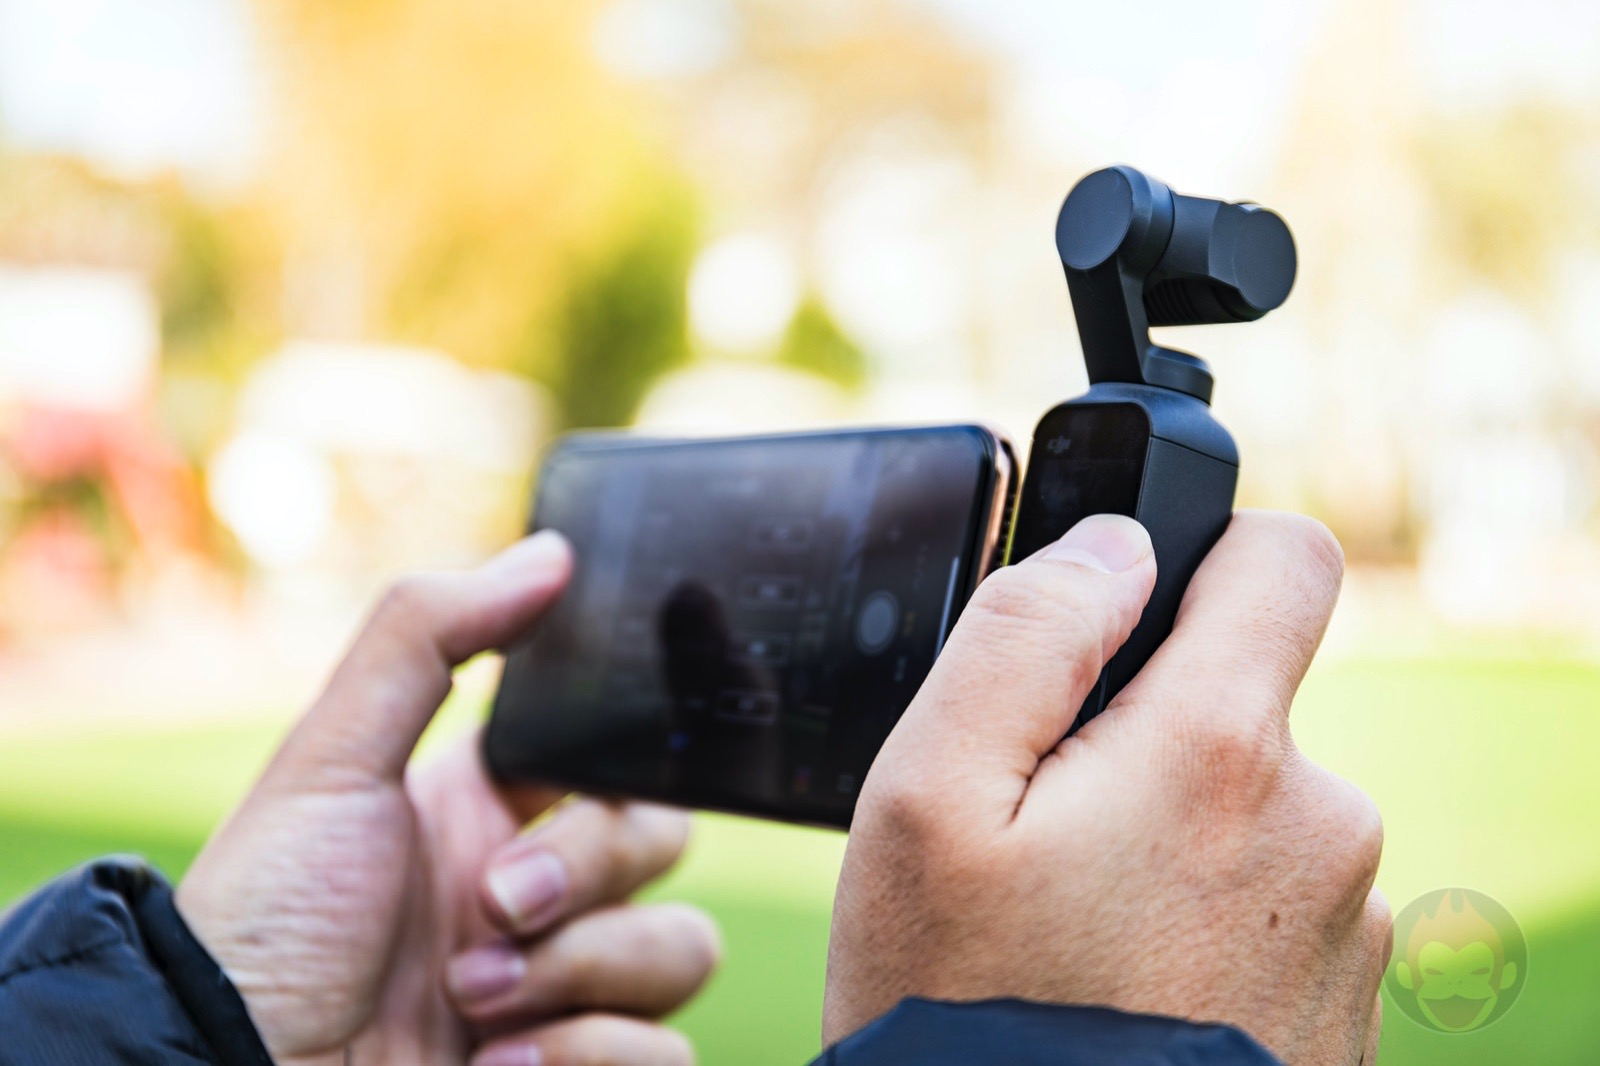 DJI Osmo Pocket Hands On 11